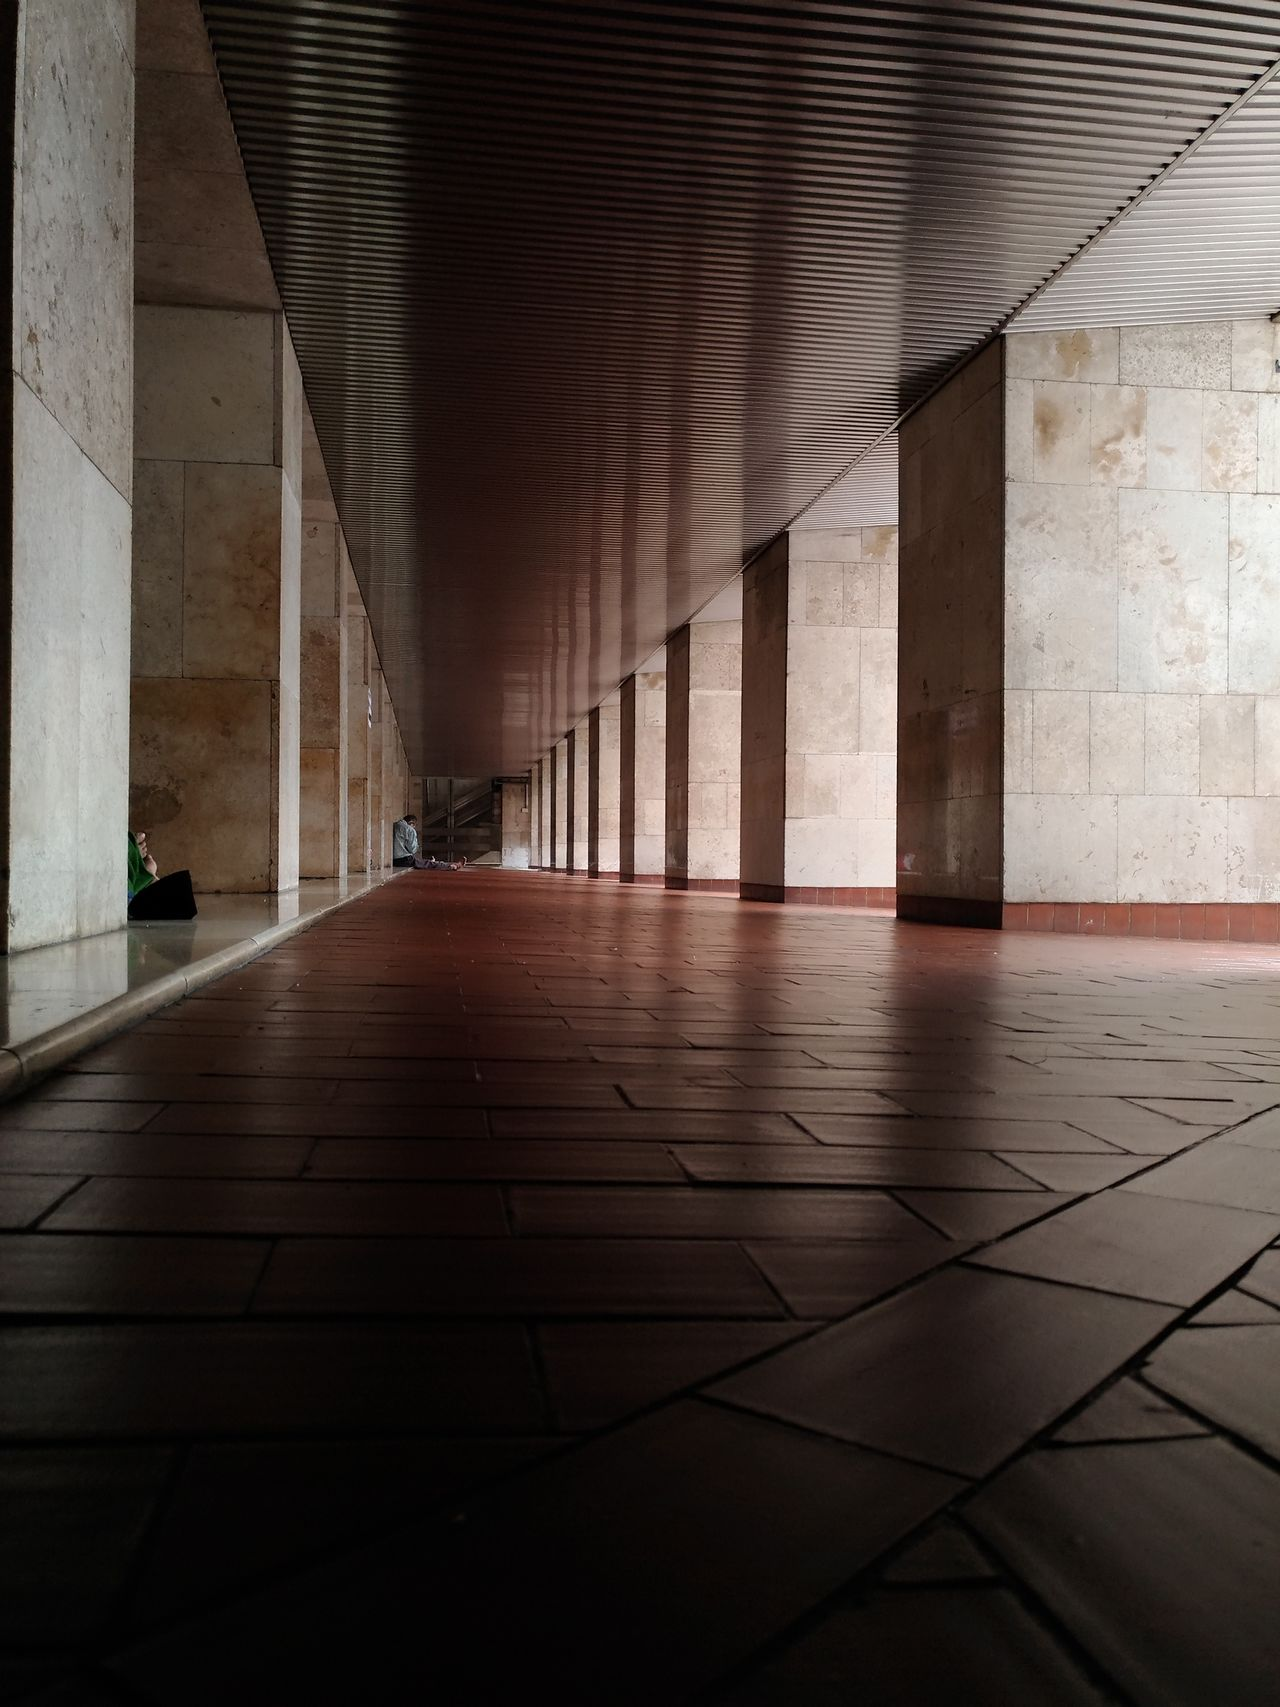 Architecture Built Structure Indoors  Architectural Column Corridor No People Day City Let's Go. Together.